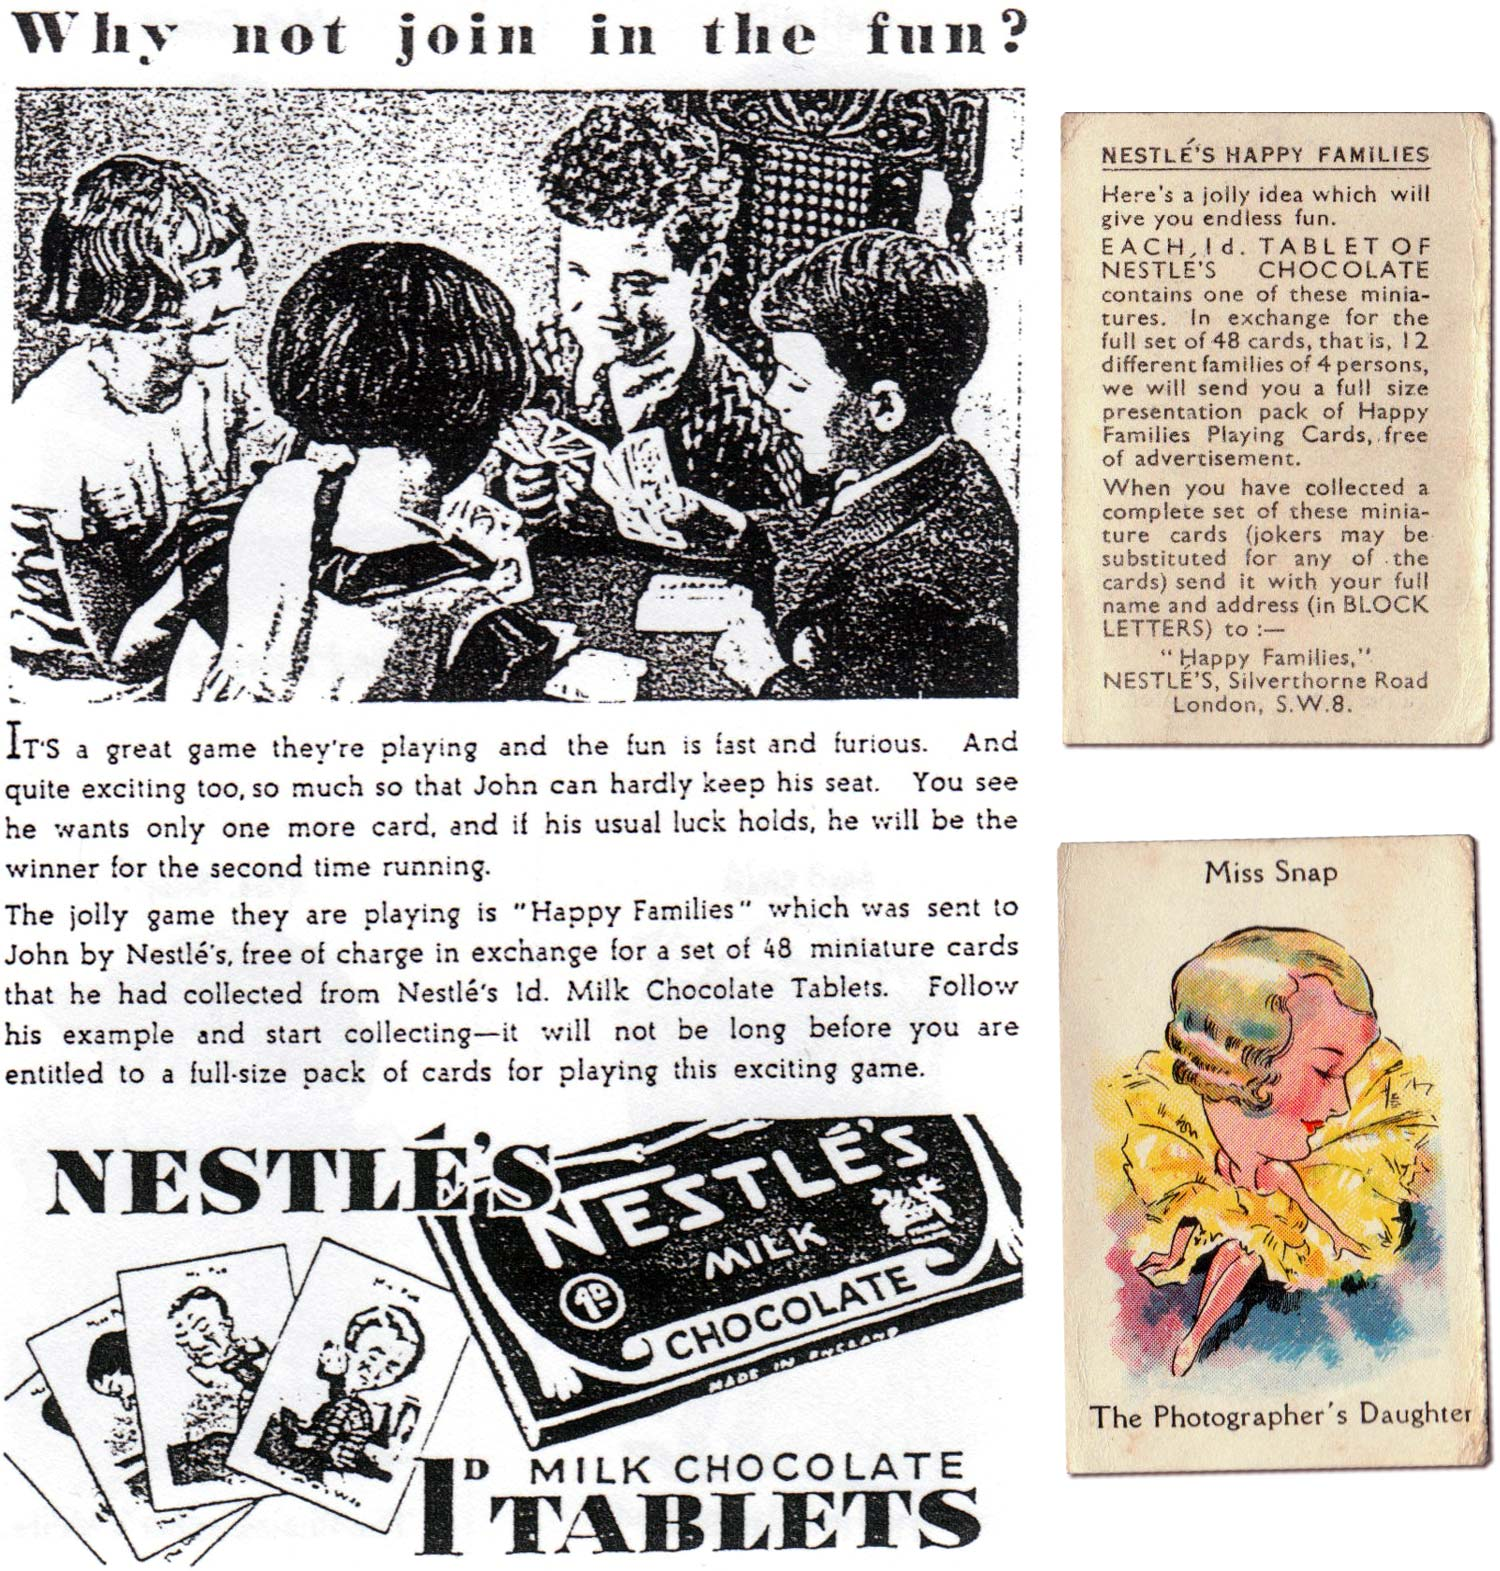 'Happy Families' published by Nestlé in 1935